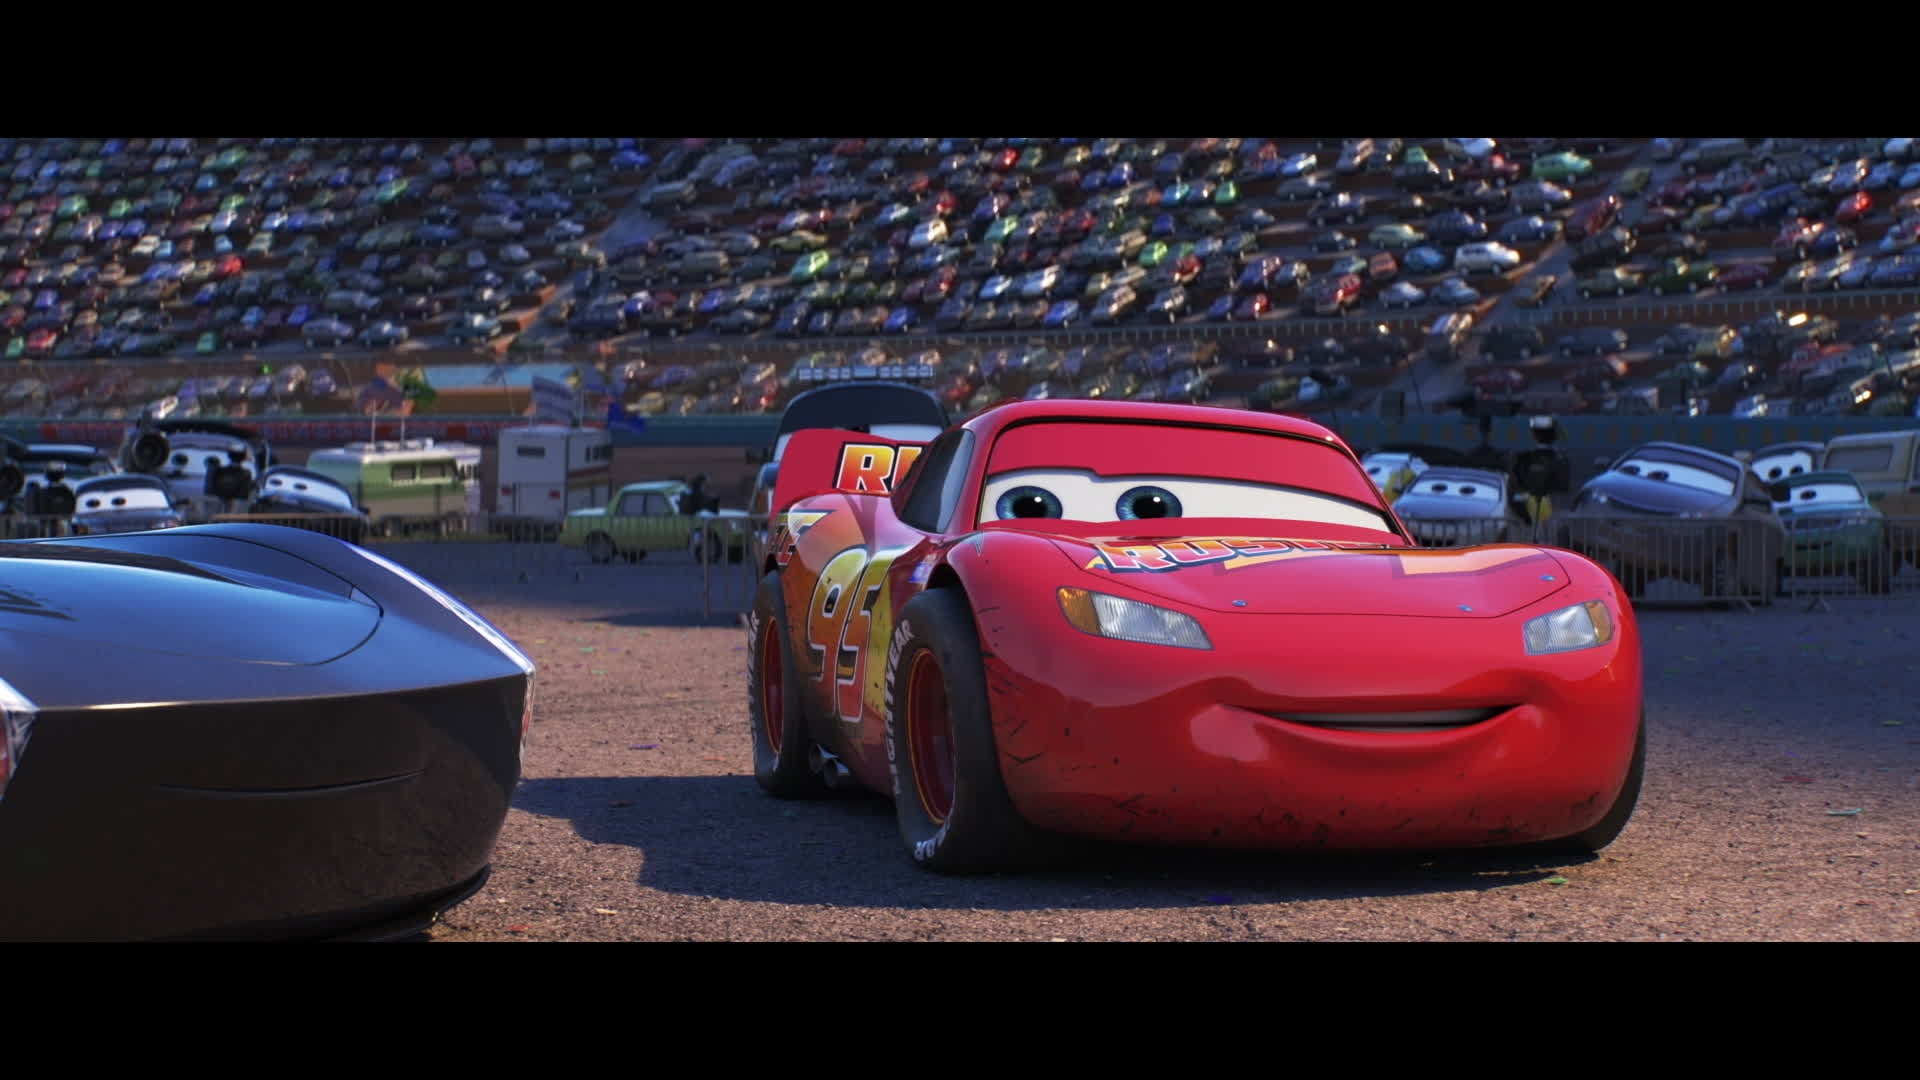 Cars 3 - Extrait : Flash McQueen rencontre Jackson Storm